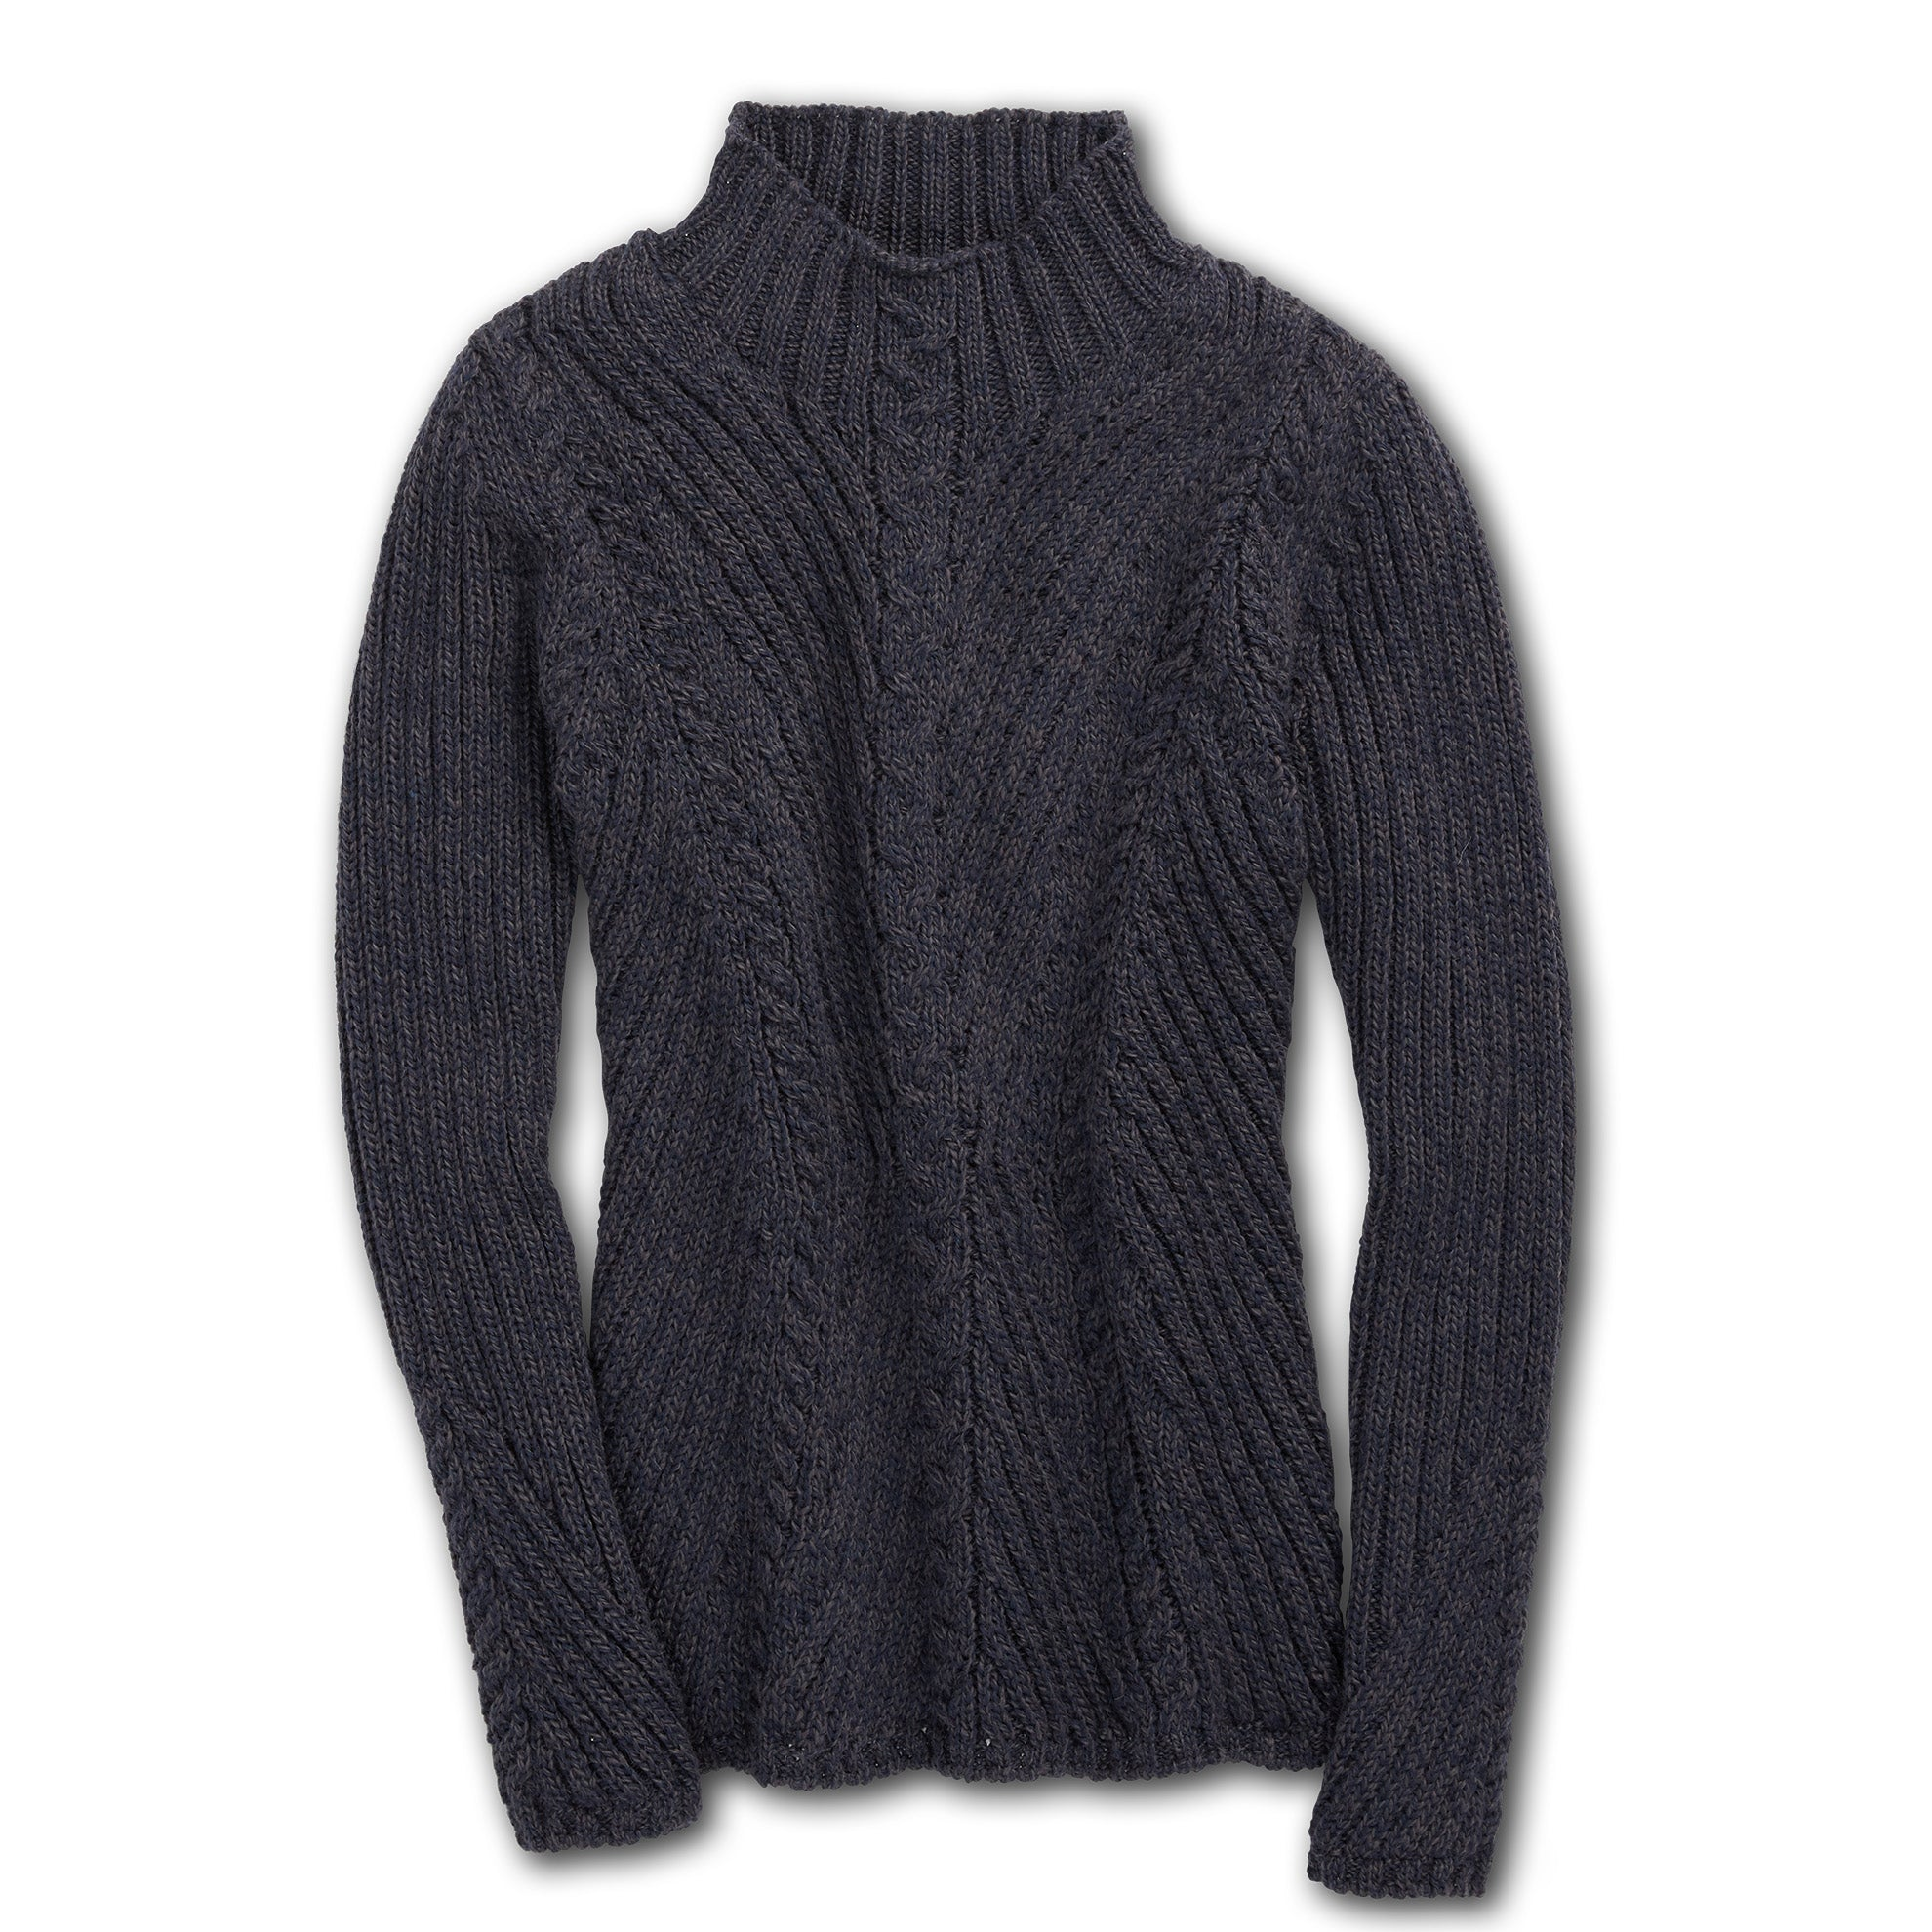 Portroe Cabled Sweater